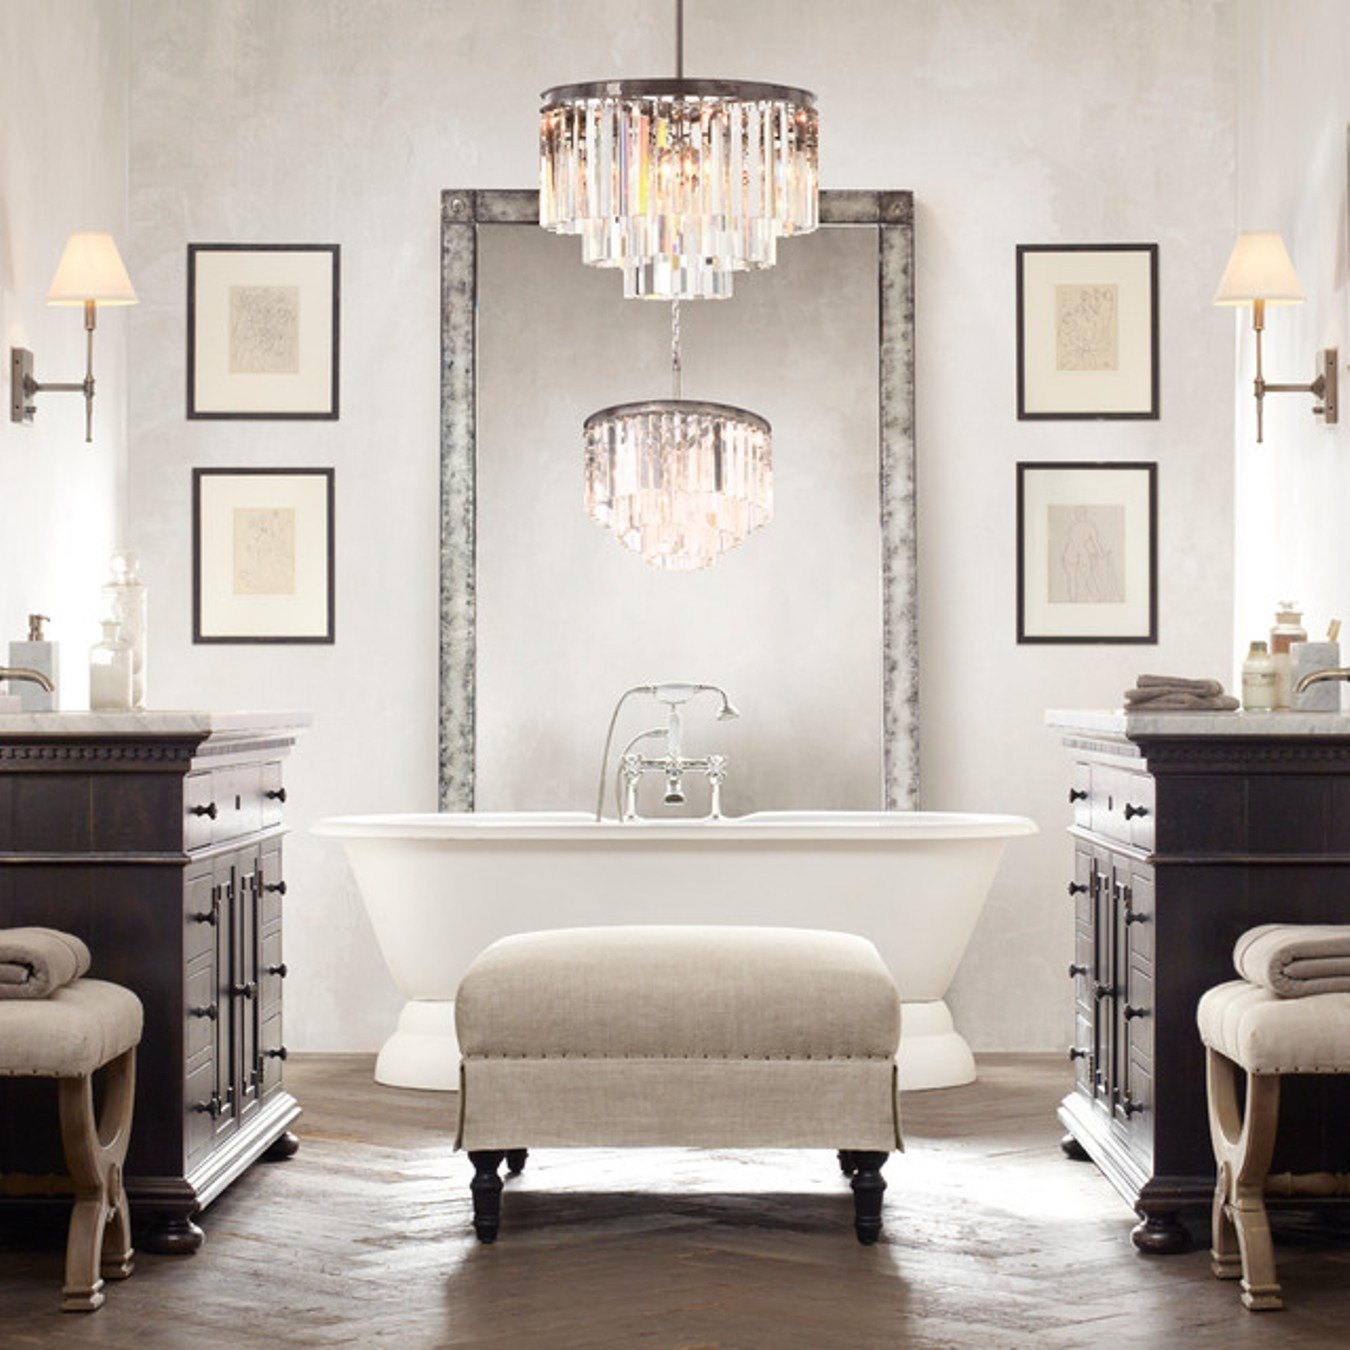 Modern Bathroom Bathroom Chandeliers Striking Small Decorative Throughout Modern Bathroom Chandeliers (View 2 of 15)